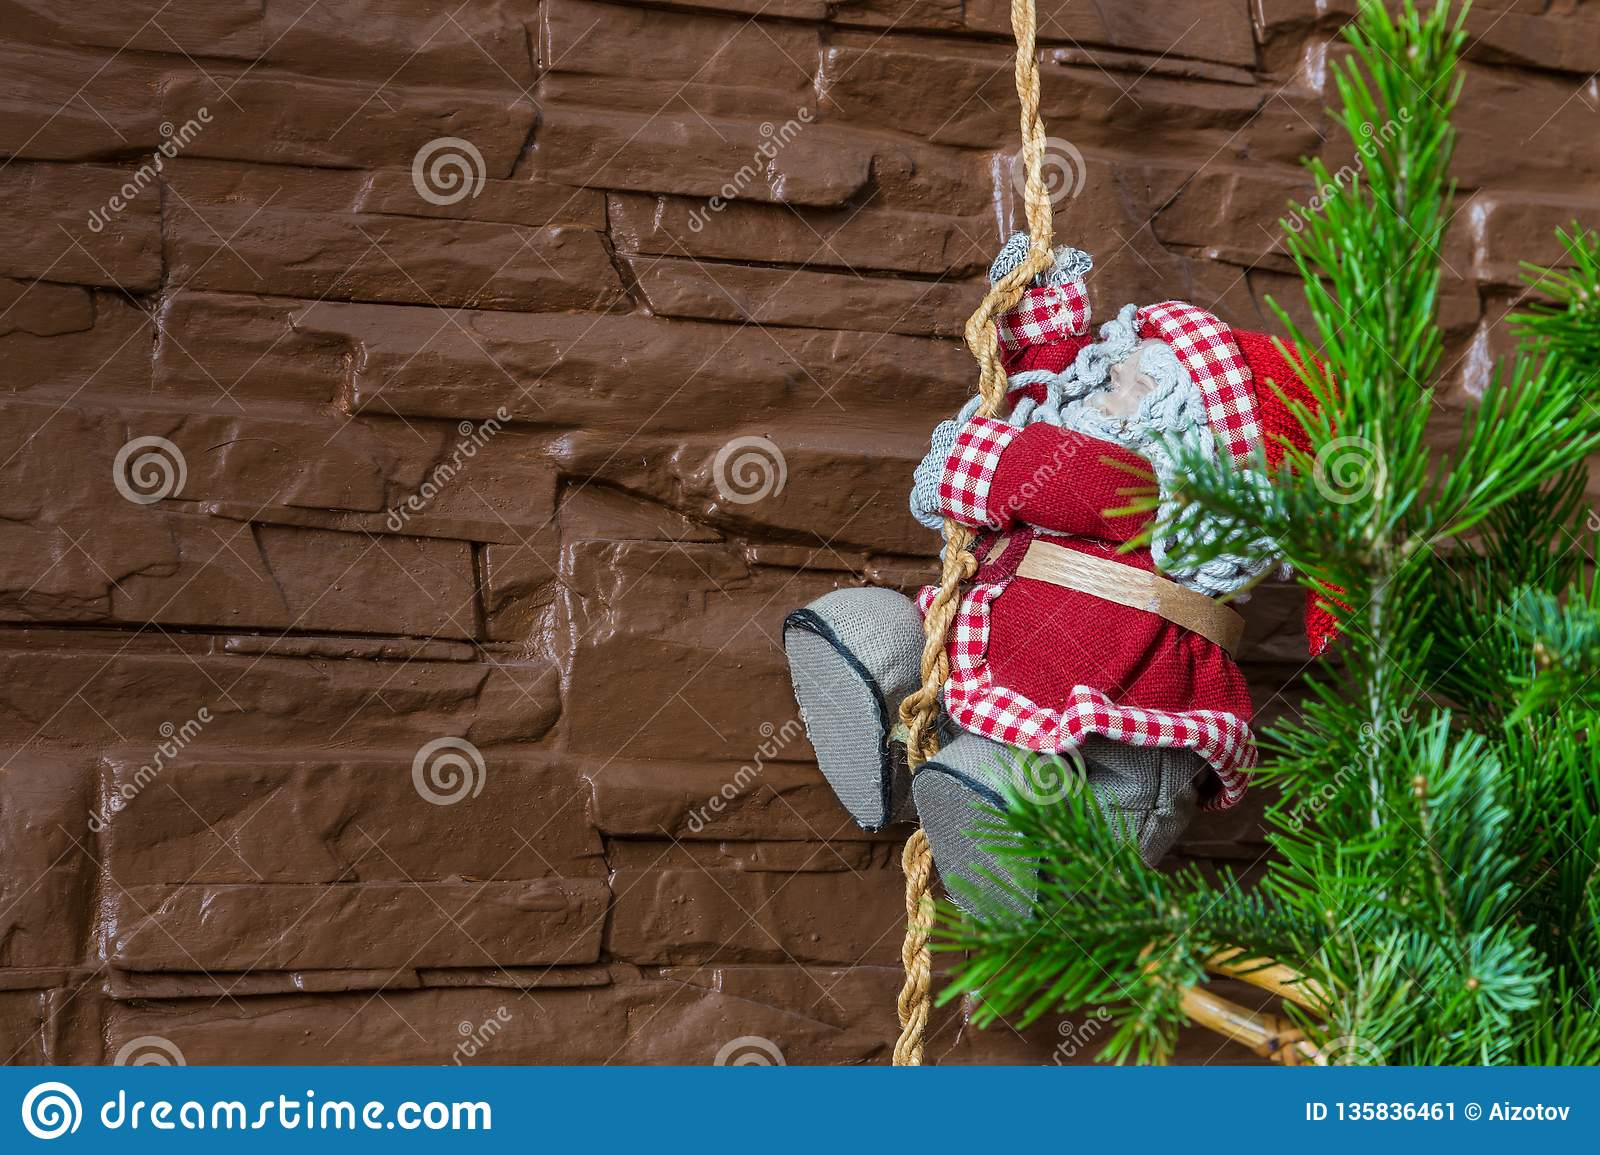 Christmas composition of a Christmas tree and Santa Claus climbing a rope